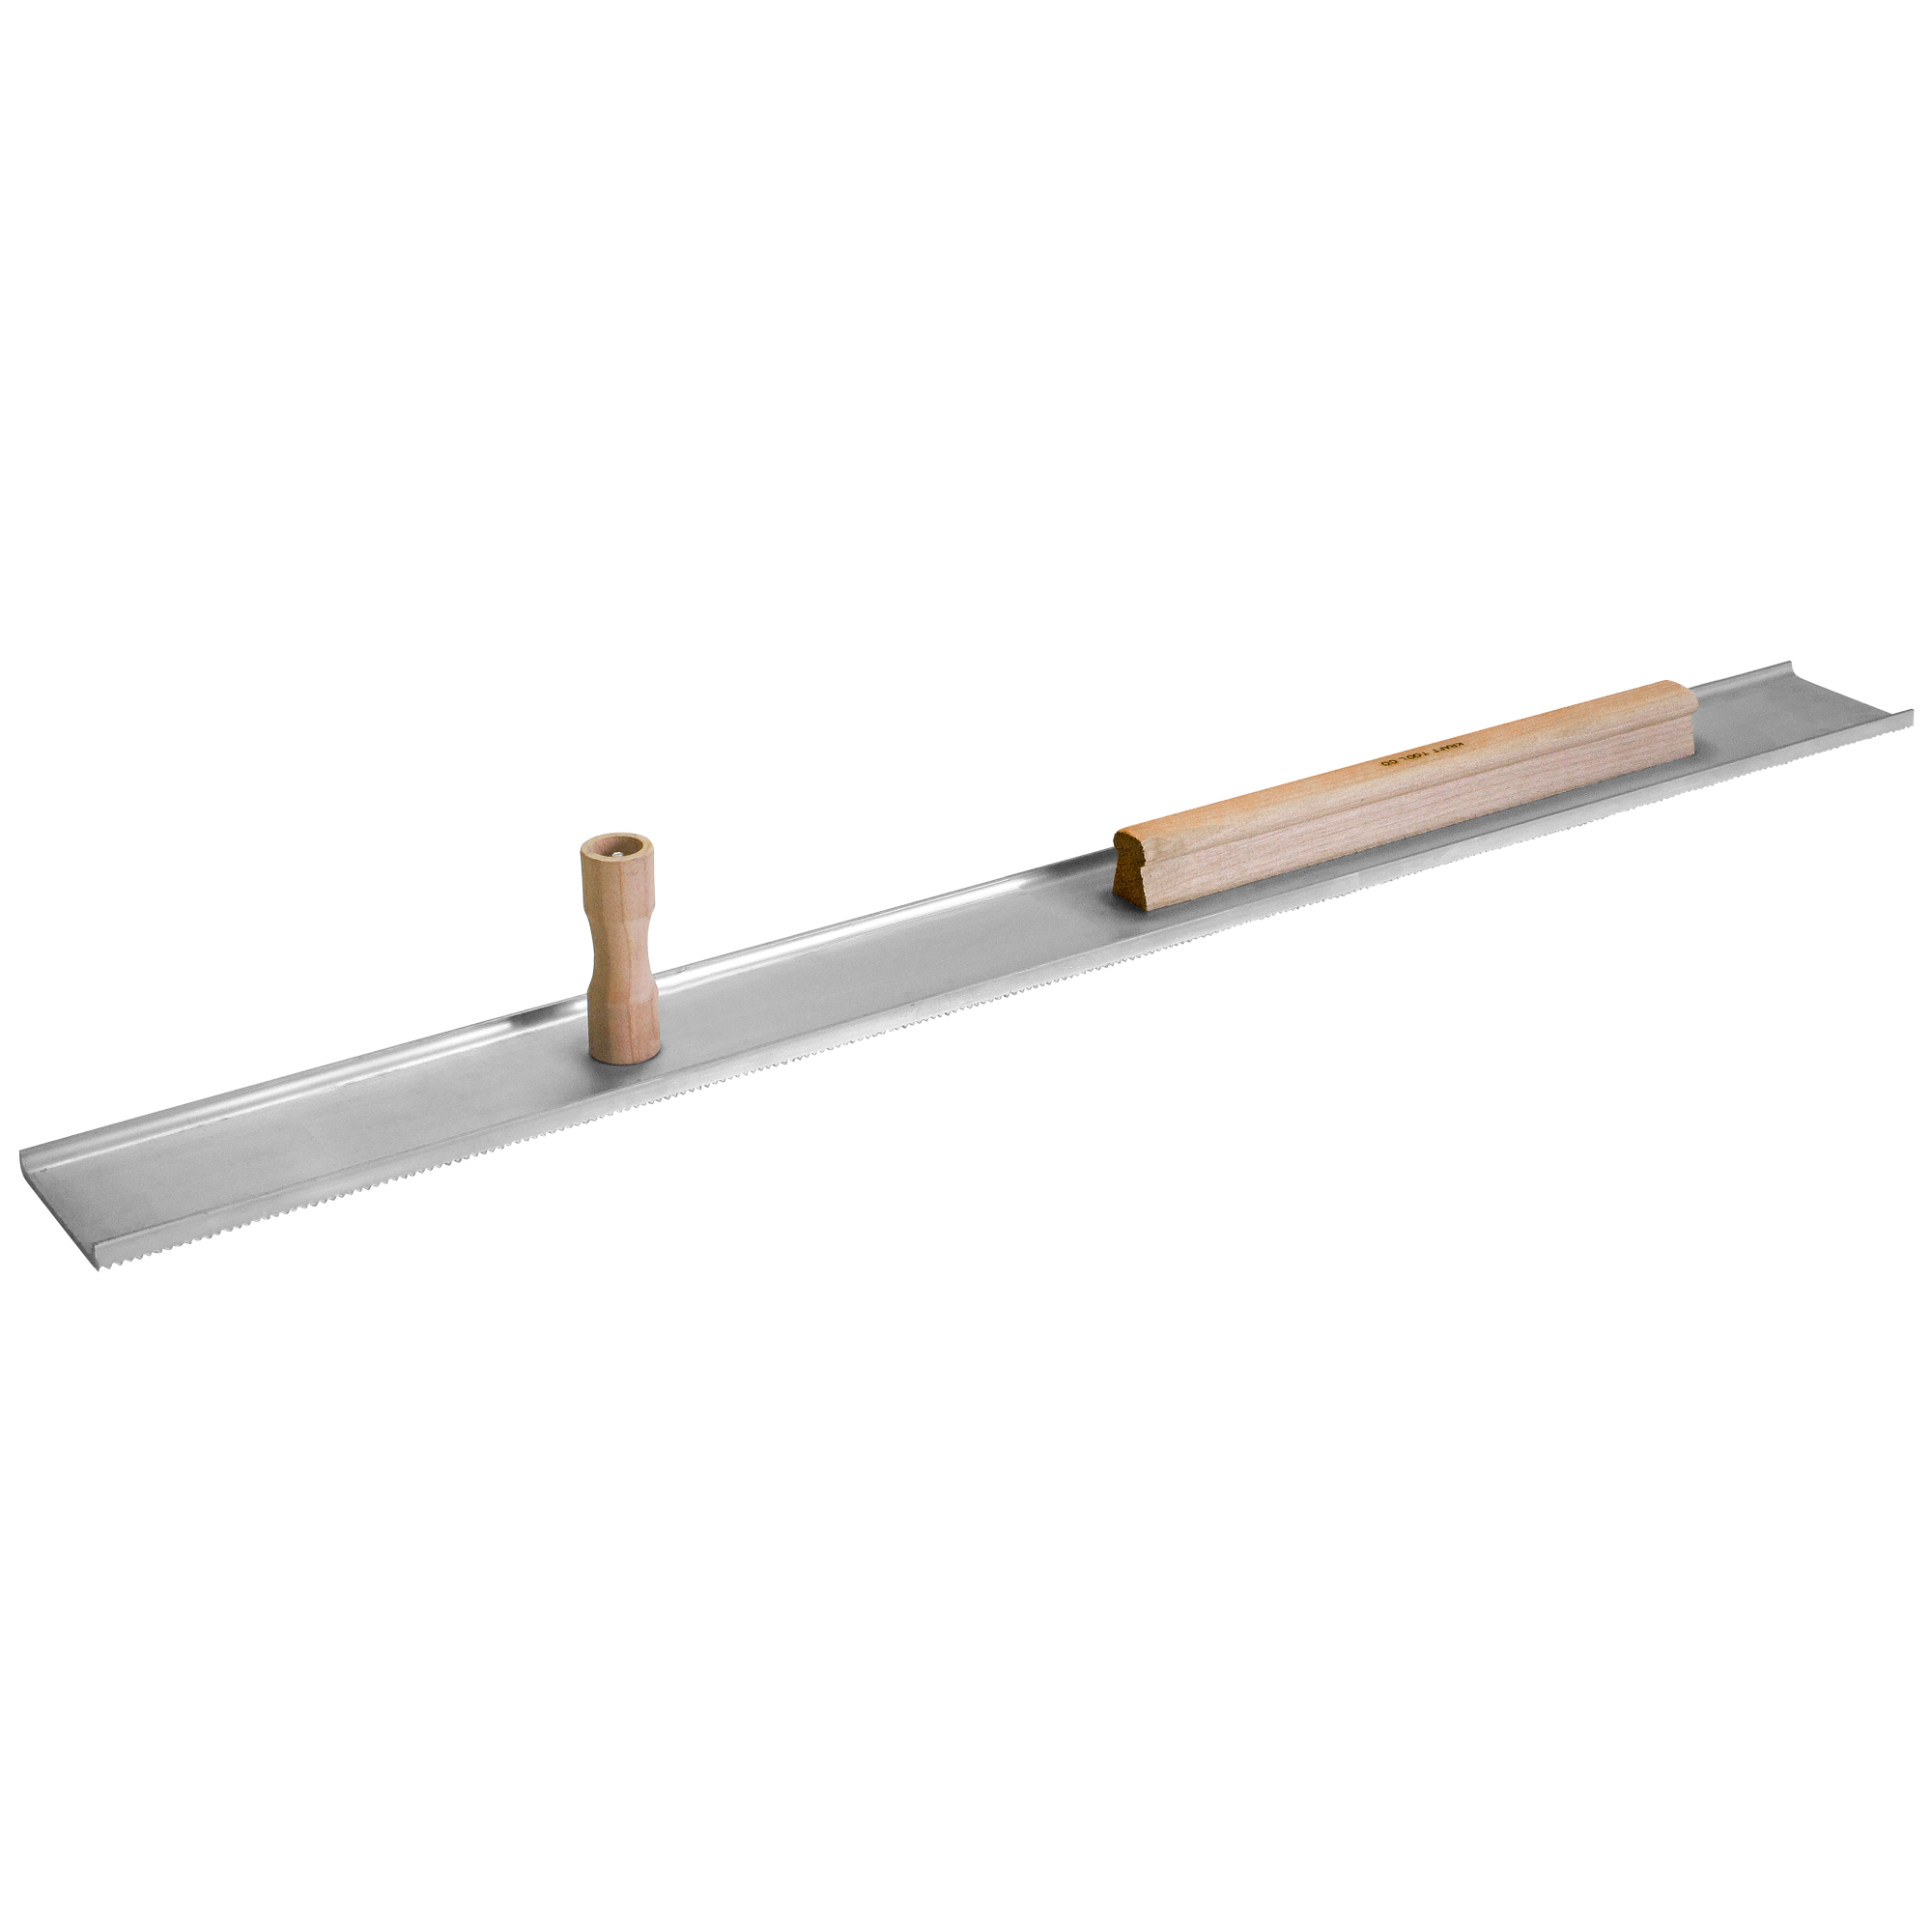 48inch Smooth Edge Magnesium Darby With 1-knob Handle - Pl401 - Measuring & Sensors Tools Drywall Plastering Darbies PL401